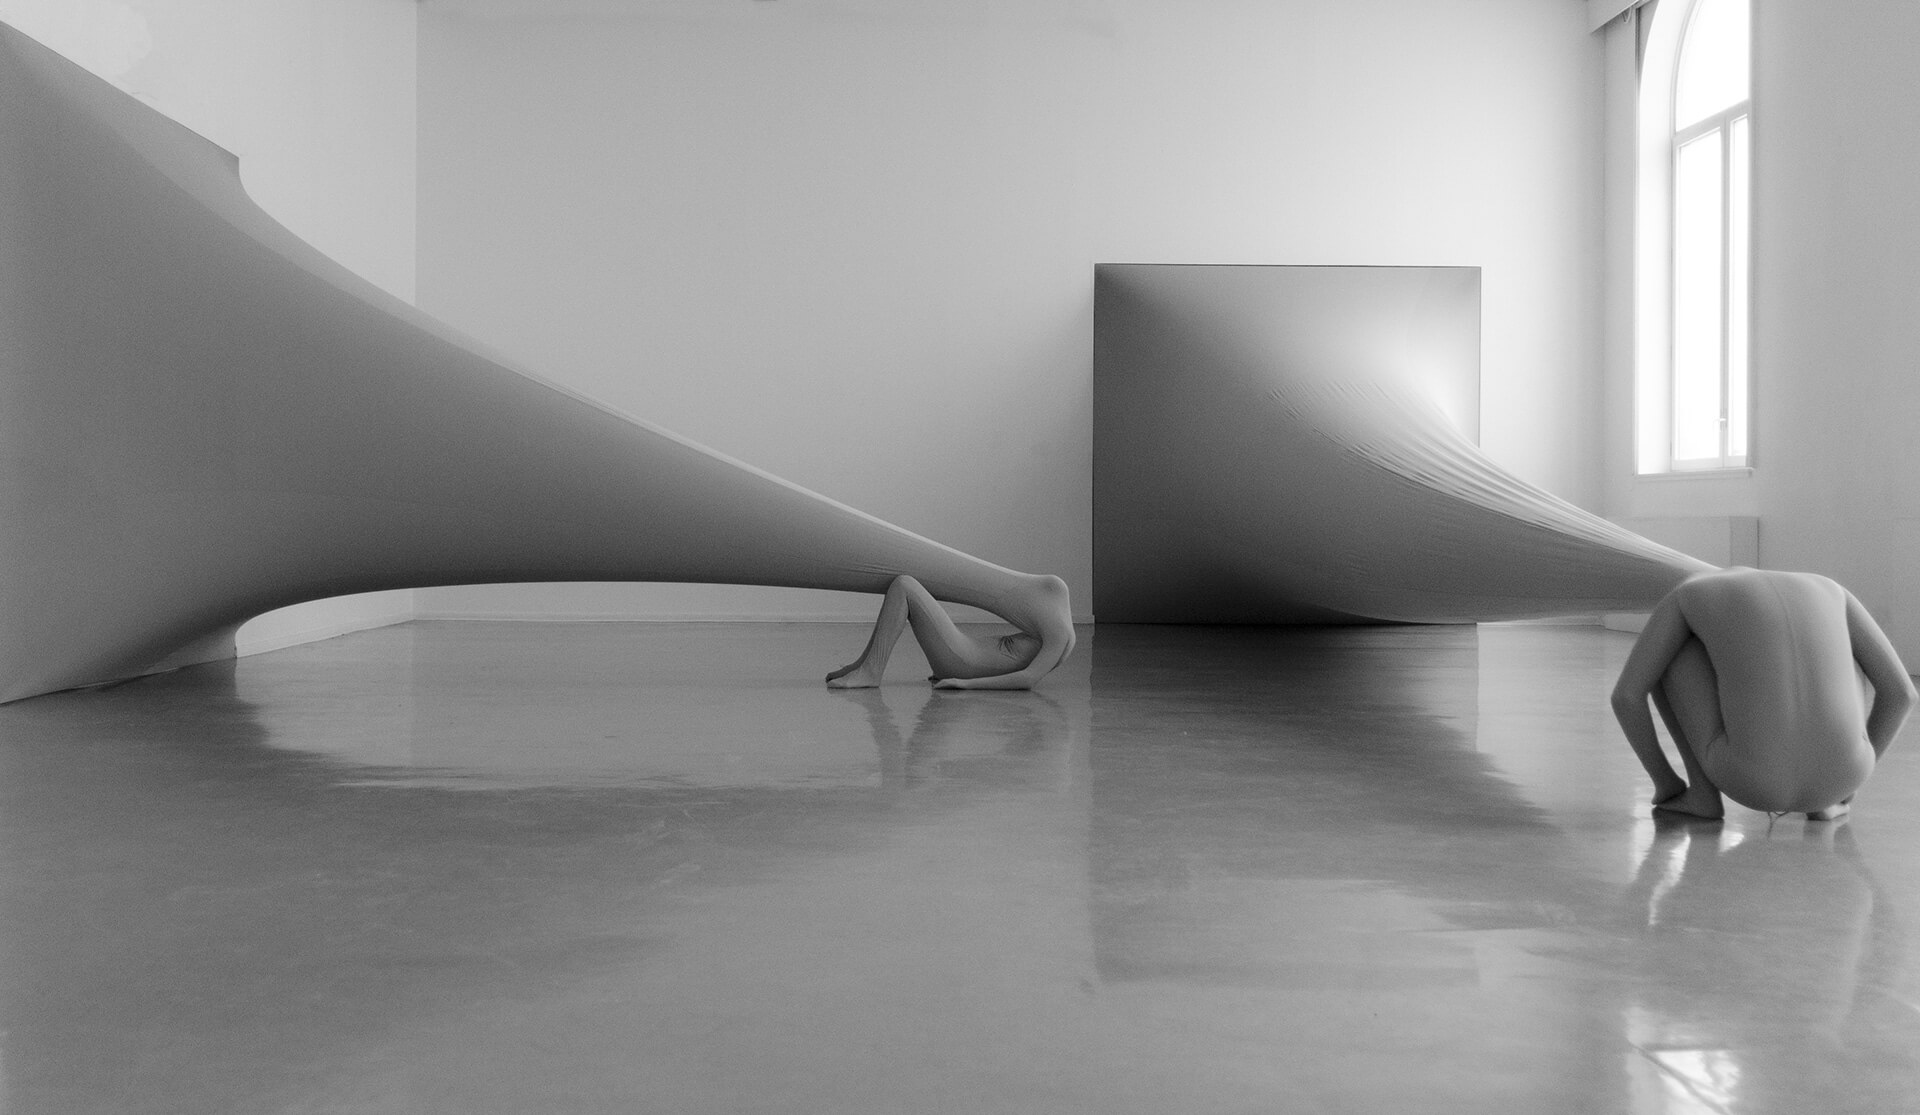 Squared Elasticity - Strained Sculpture by Malin Bulow | Squared Elasticity - Strained Sculpture by Malin Bulow | STIRworld